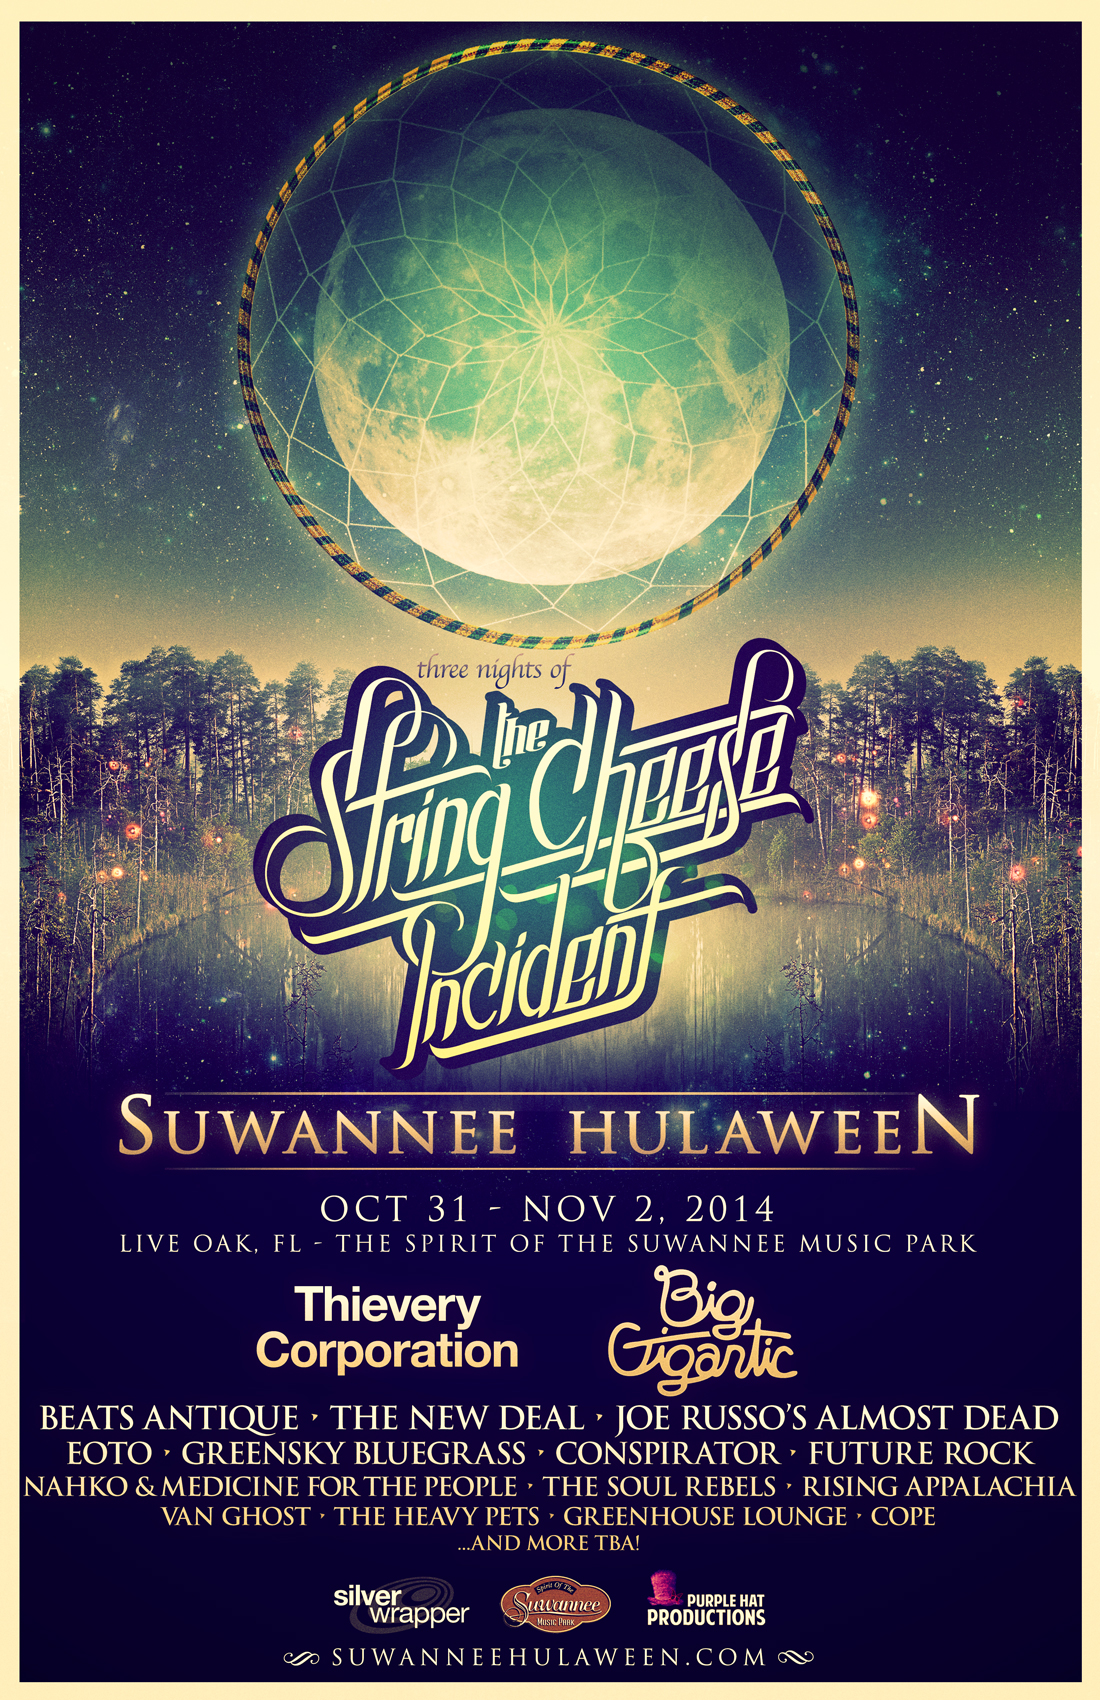 INITIAL LINE UP IS UNVEILED FOR THE SECOND ANNUAL STRING CHEESE INCIDENT SUWANNEE HULAWEEEN